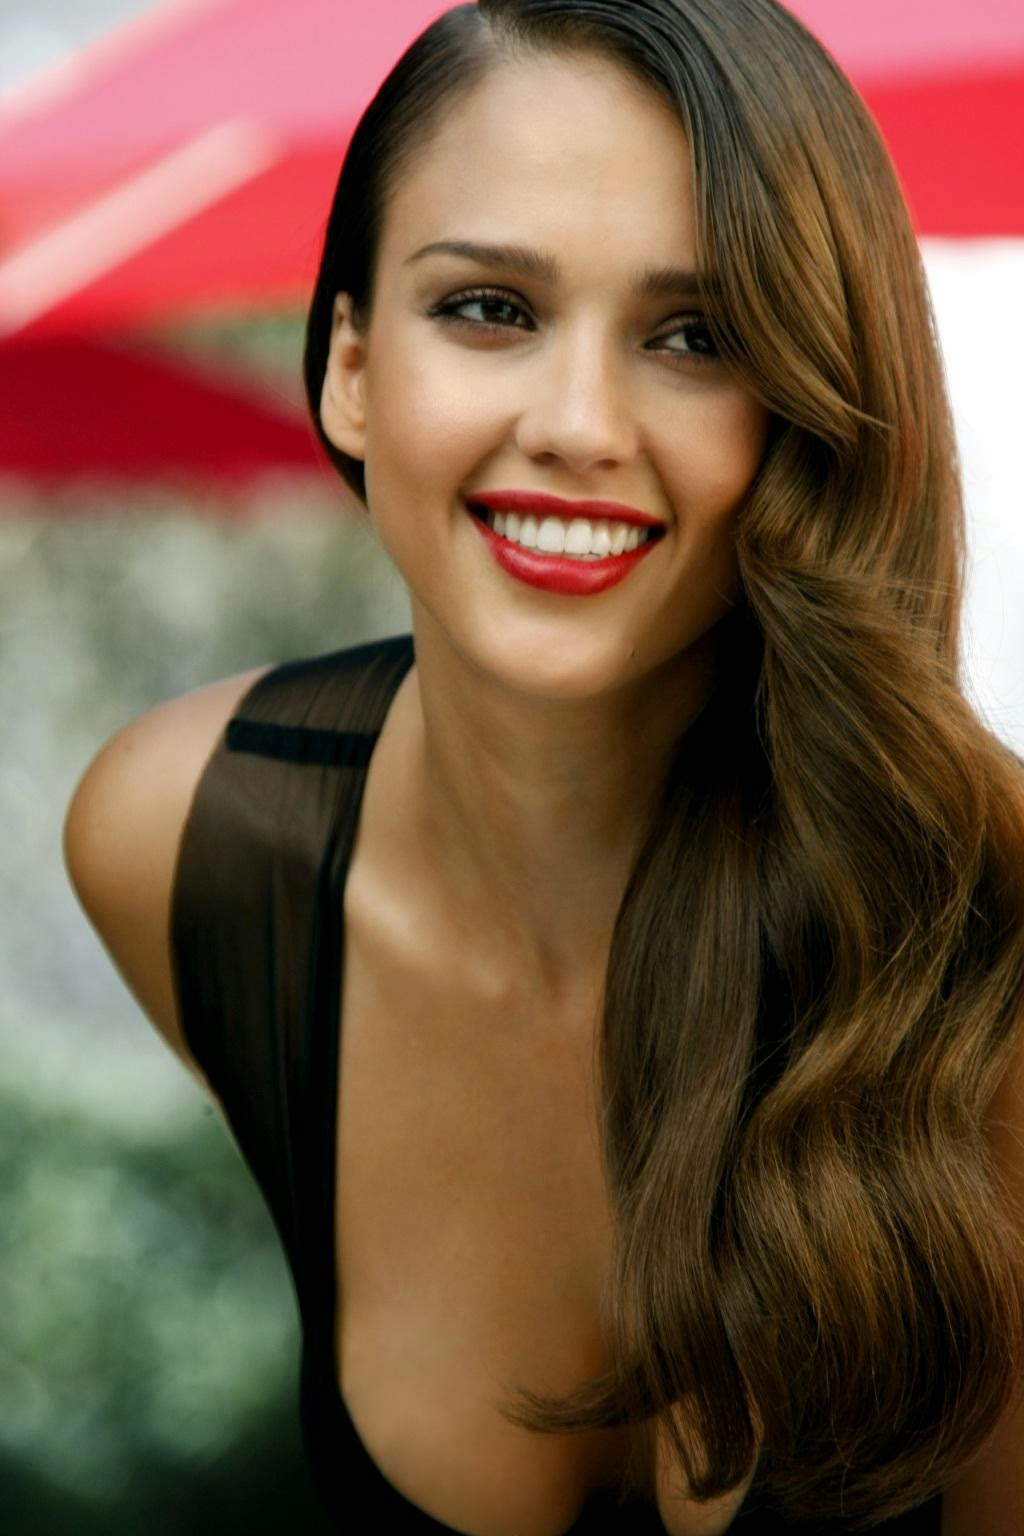 Amazing Cute Hairstyle Celebrity Jessica Alba Cute Long Hairstyle Short Hairstyles For Black Women Fulllsitofus